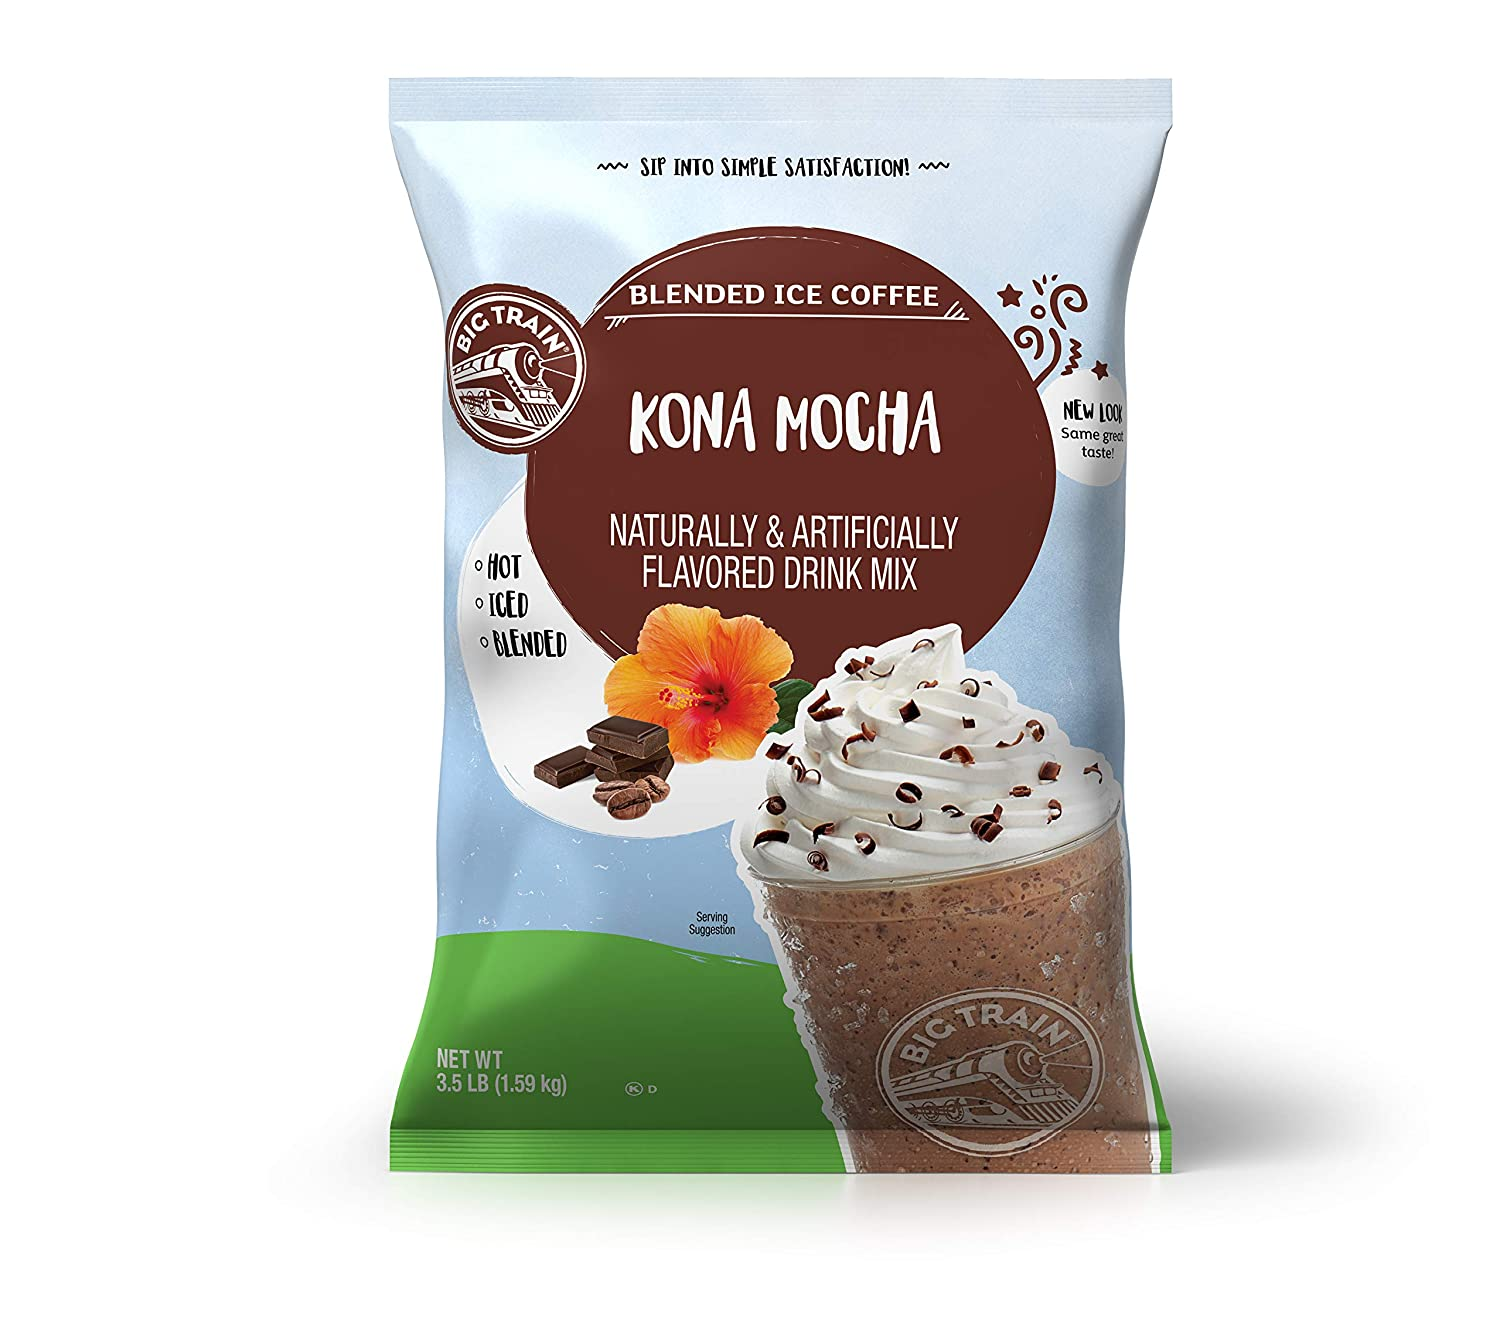 Big Train Blended Ice Coffee, Kona Mocha, Powdered Instant Coffee Drink Mix, 3.5 Pound (Packaging May Vary)